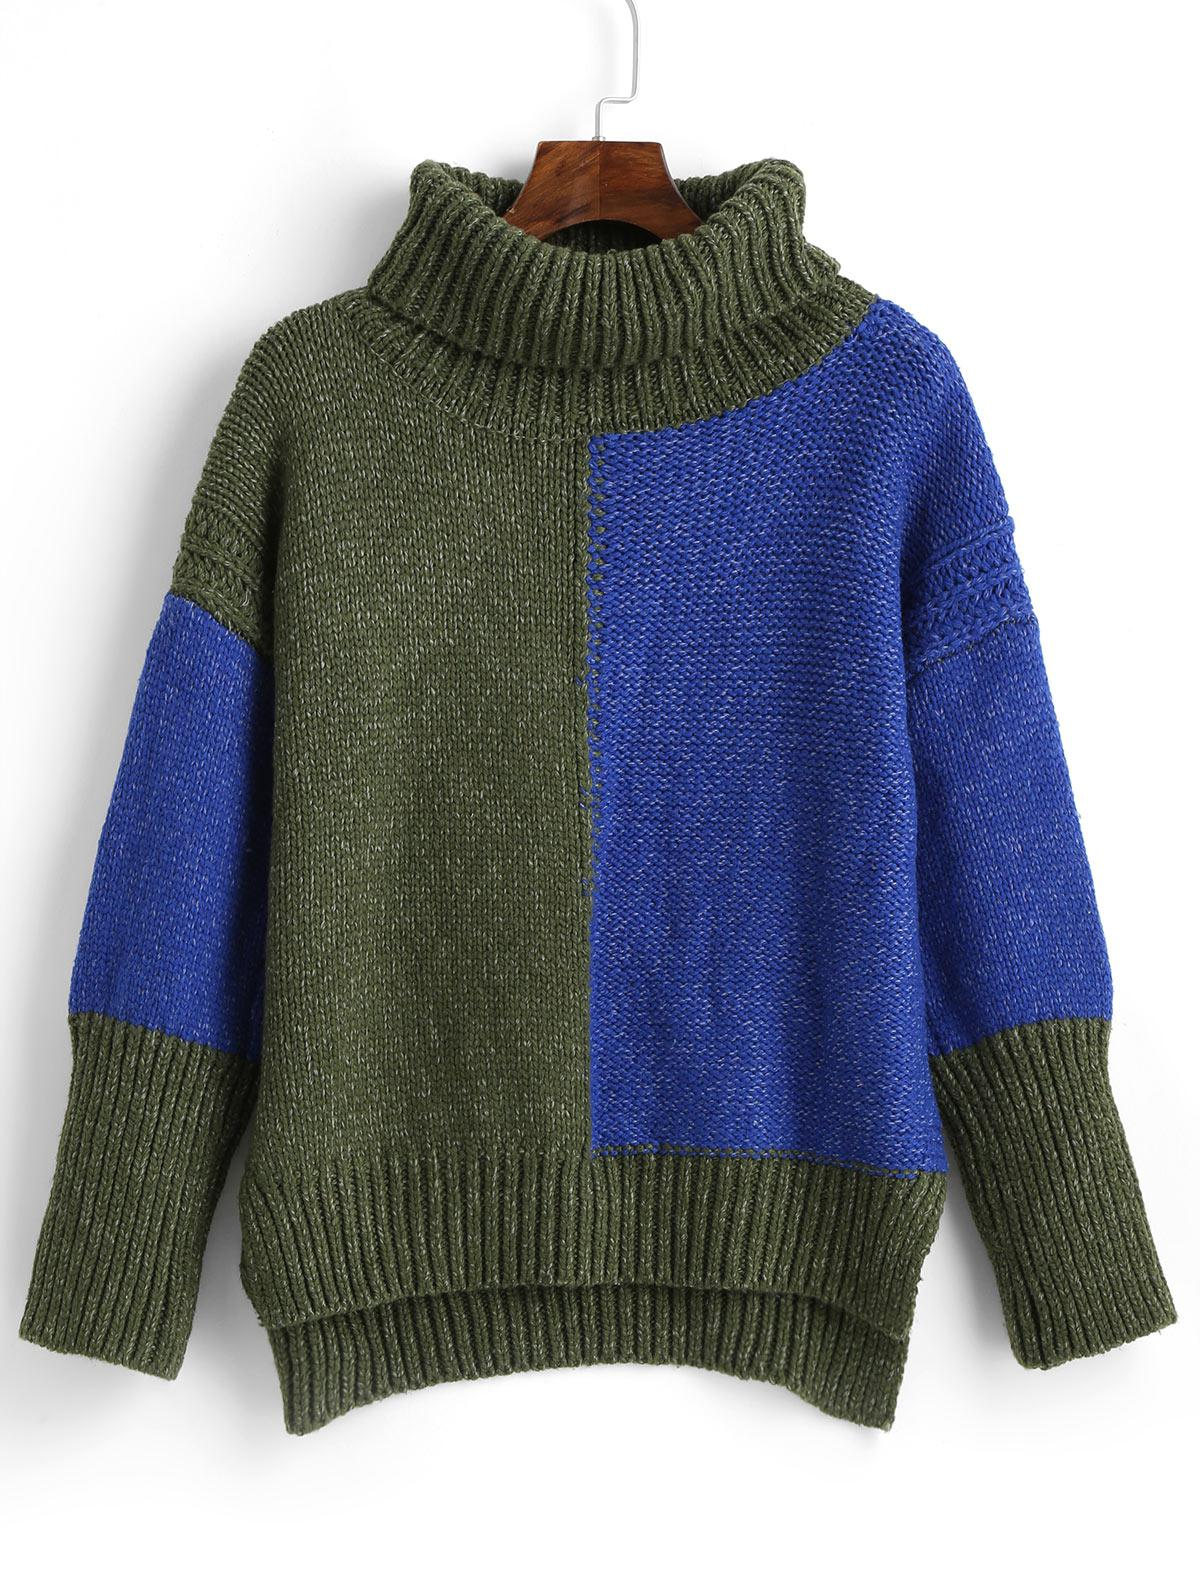 ZAFUL High Low Color Block Turtleneck Sweater